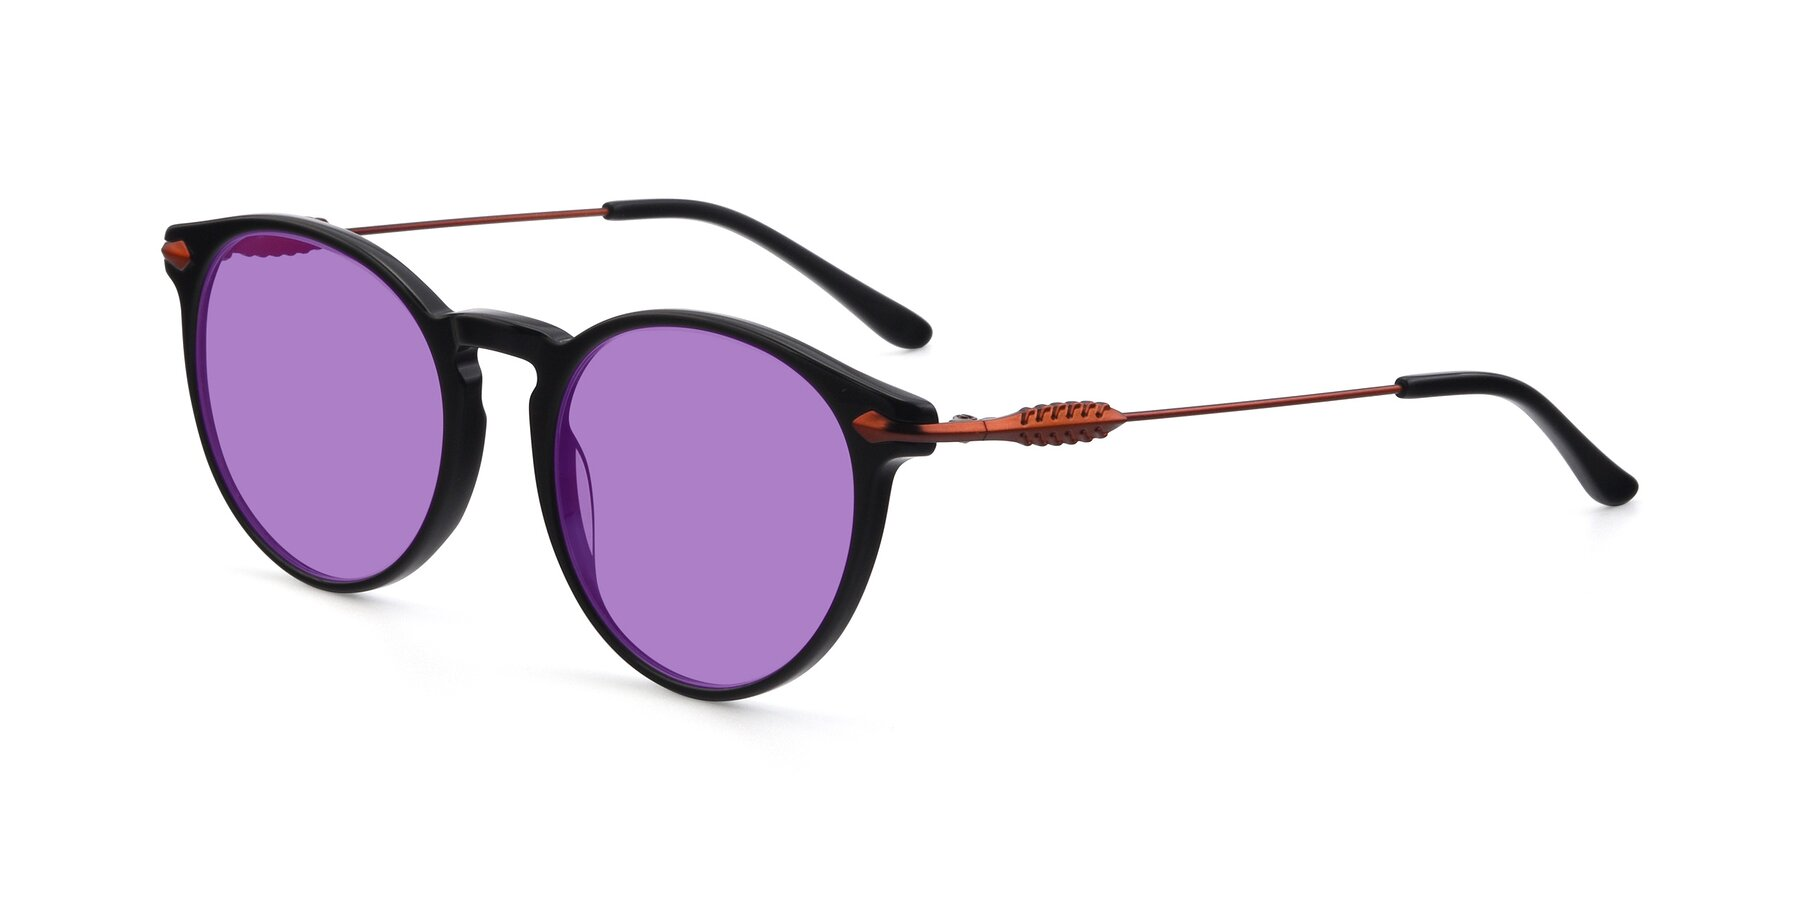 Angle of 17660 in Black with Medium Purple Tinted Lenses